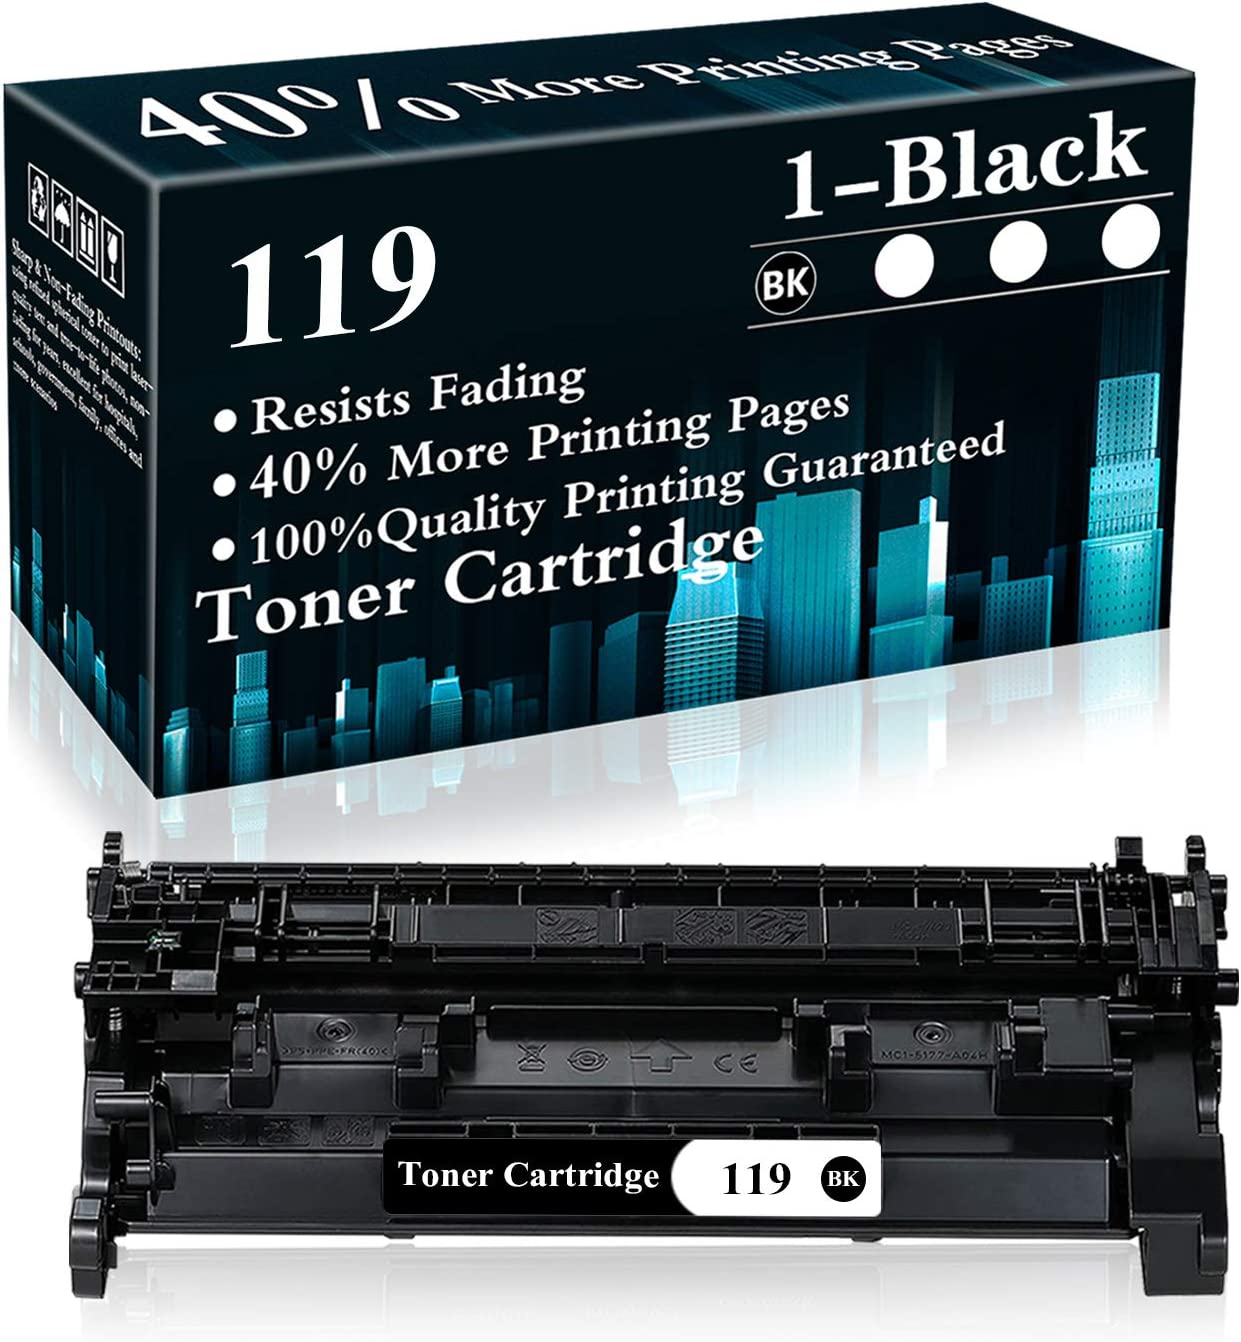 1 Black 119 | CRG-119 Toner Cartridge Replacement for Canon imageCLASS MF5850dn MF5950dw MF6180dw MF416dw MF419dw MF418x LBP6340 LBP6670dn LBP6680x LBP251dw LBP252dw LBP253dw Printer,Sold by TopInk